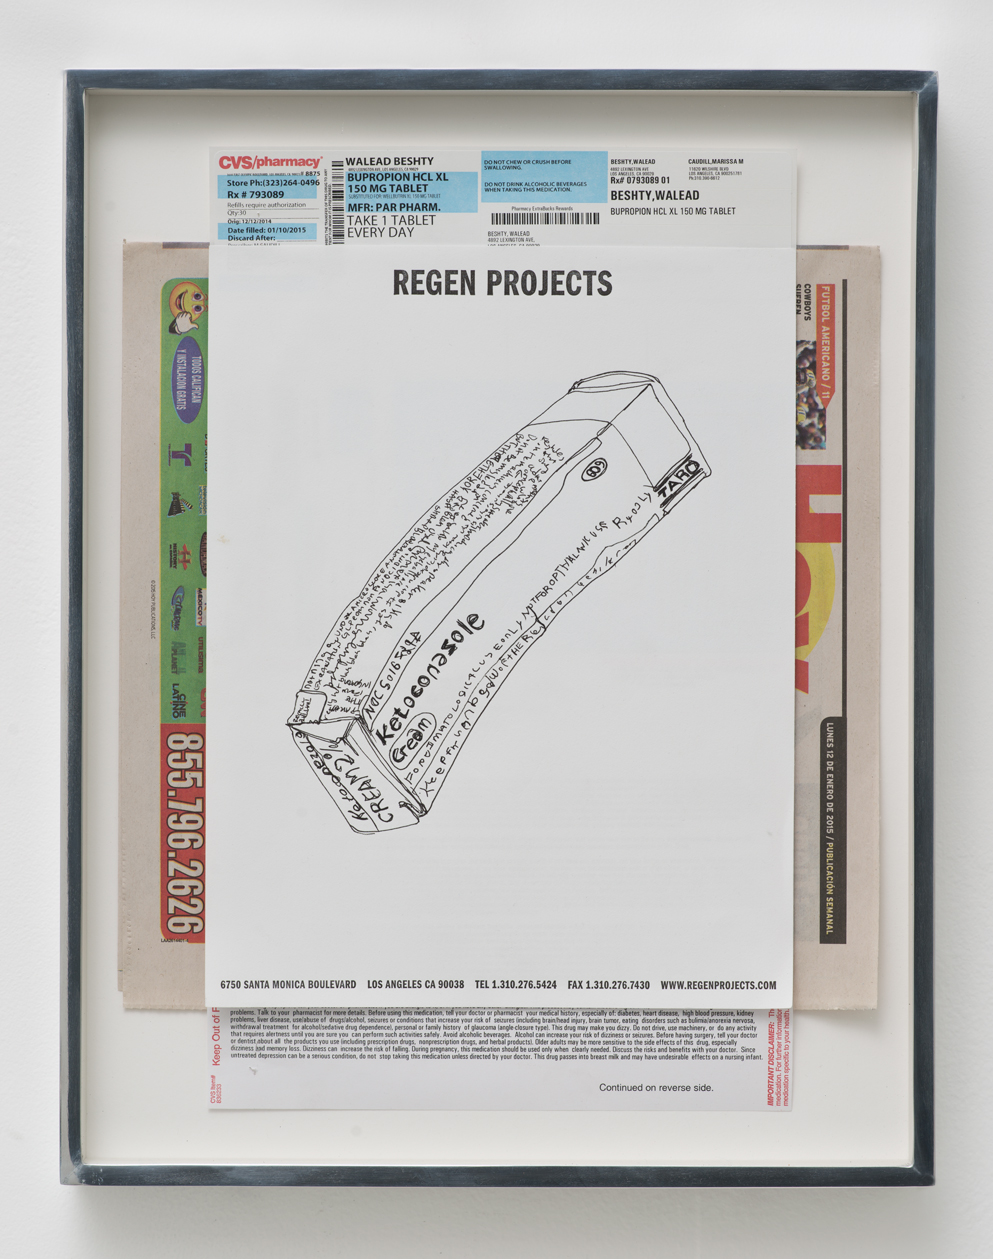 Ketoconazole 2%, 60 g, Cream, Taro Pharmaceutical Industries, Ltd.: Regen Projects, Los Angeles, California, January 12, 2015   2015  Ink on letterhead, newspaper, ink on paper  15 x 11 1/2 inches   Drawings, 2014–    Walid AlBeshti, 2015